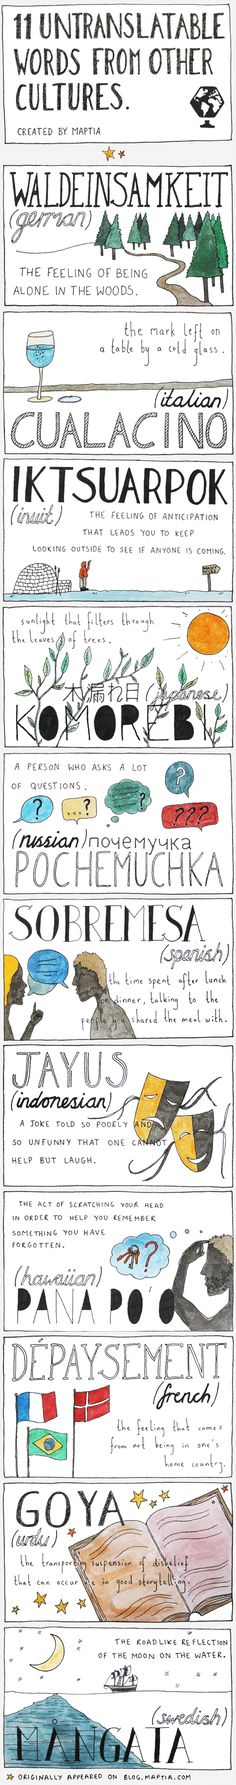 """Untranslatable"" words"